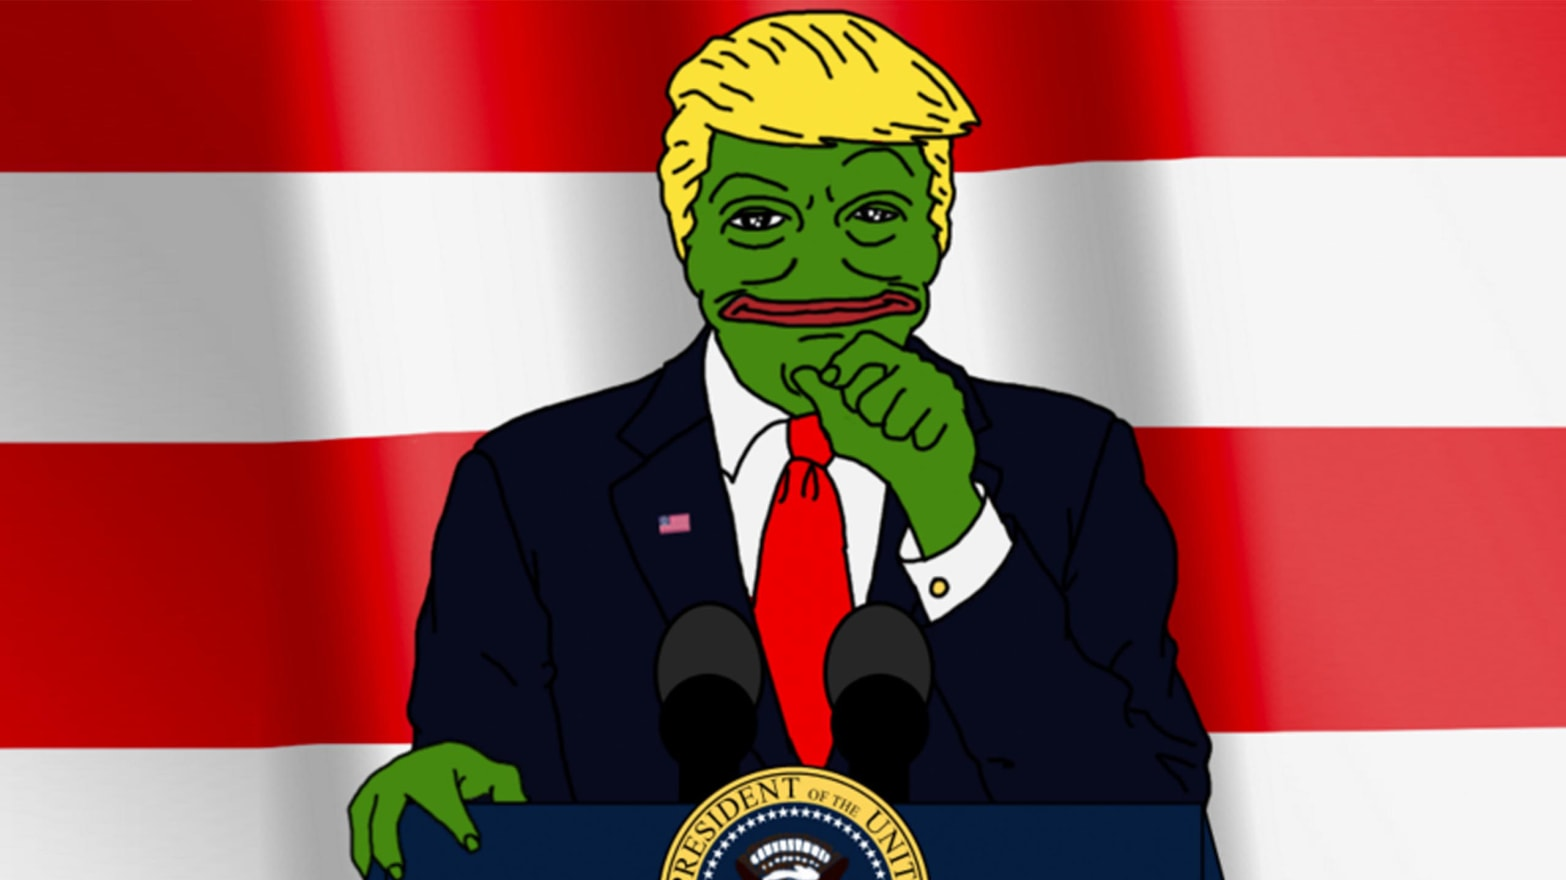 How Pepe the Frog Became a Nazi Trump Supporter and Alt-Right Symbol